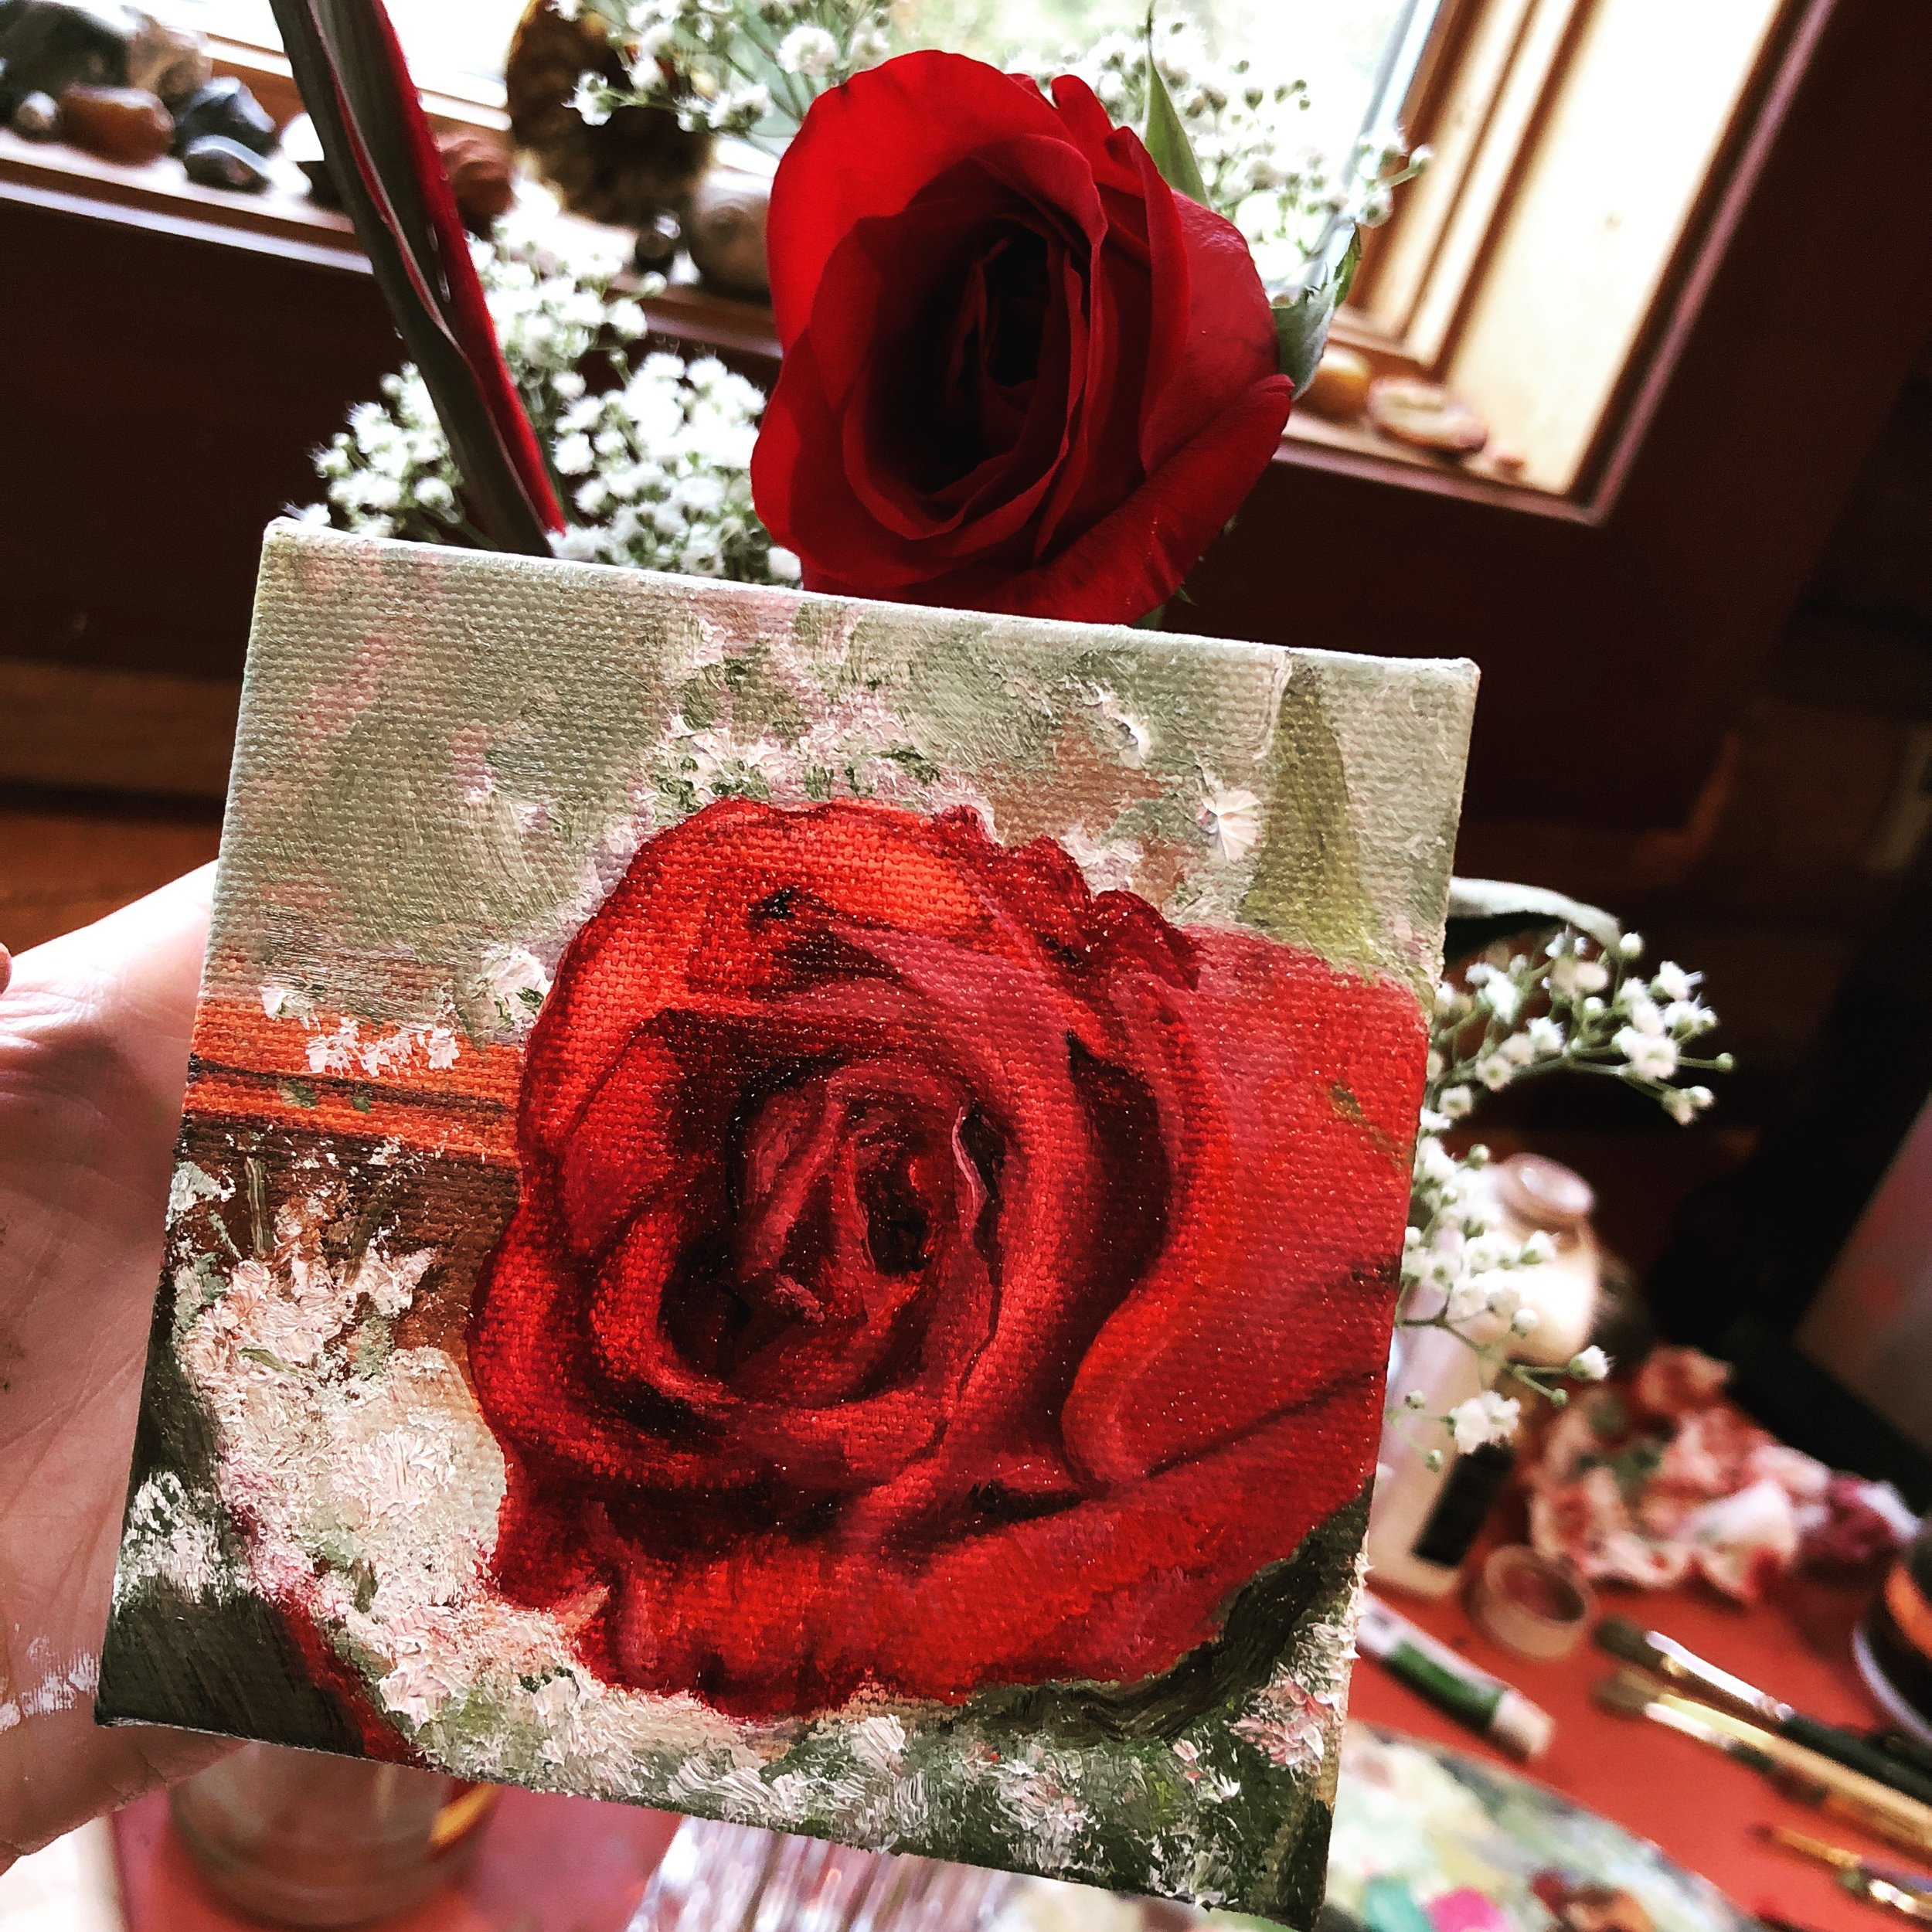 Happy Valentines Day! Here is an oil painting from real life looking at a rose for three days and continuing to paint it wilted. Maybe this represents loving something real.